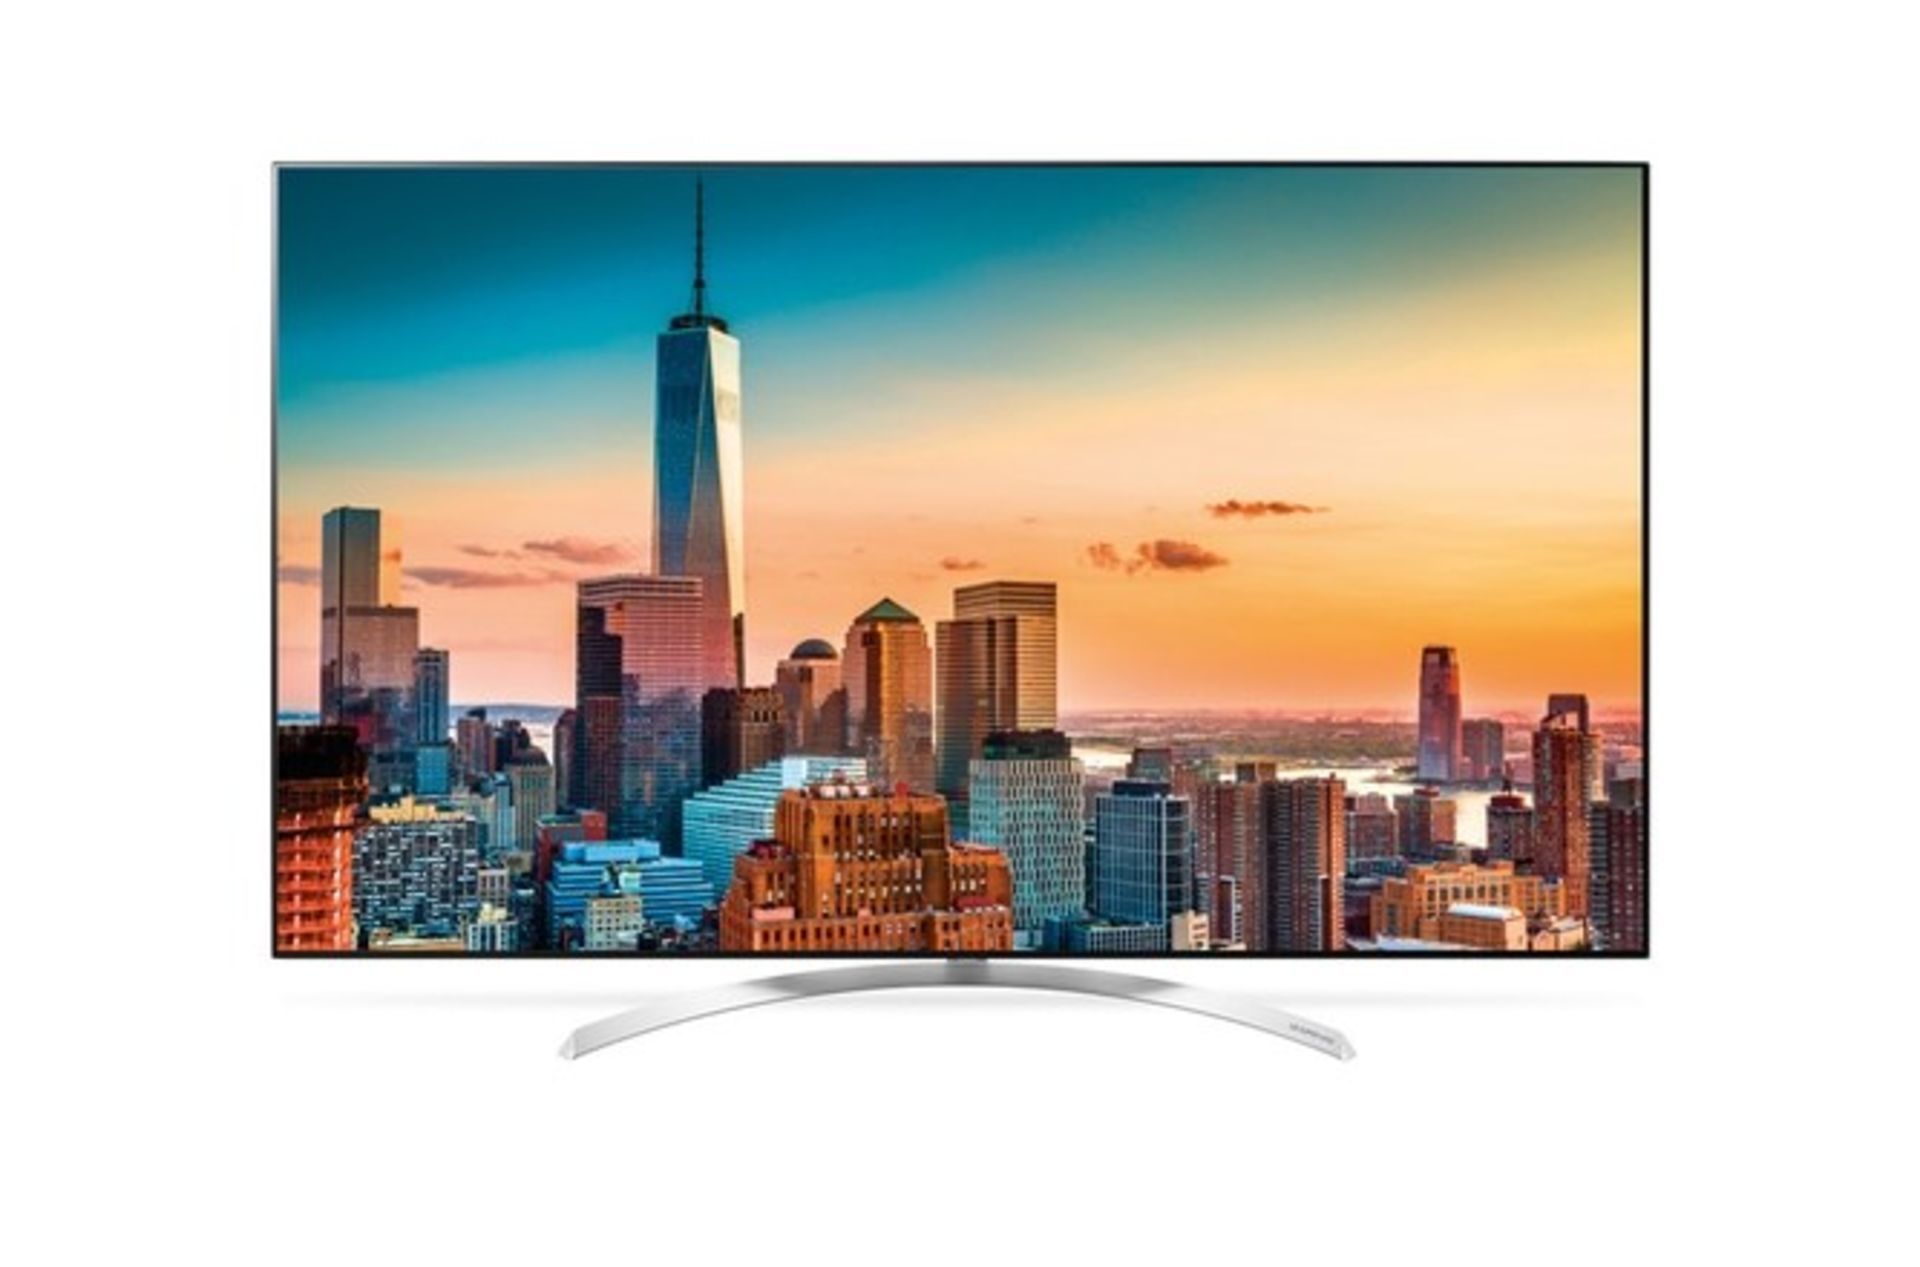 Lotto 30022 - V Grade A LG 55 Inch ACTIVE HDR 4K SUPER ULTRA HD NANO LED SMART TV WITH FREEVIEW HD & WEBOS 3.5 &